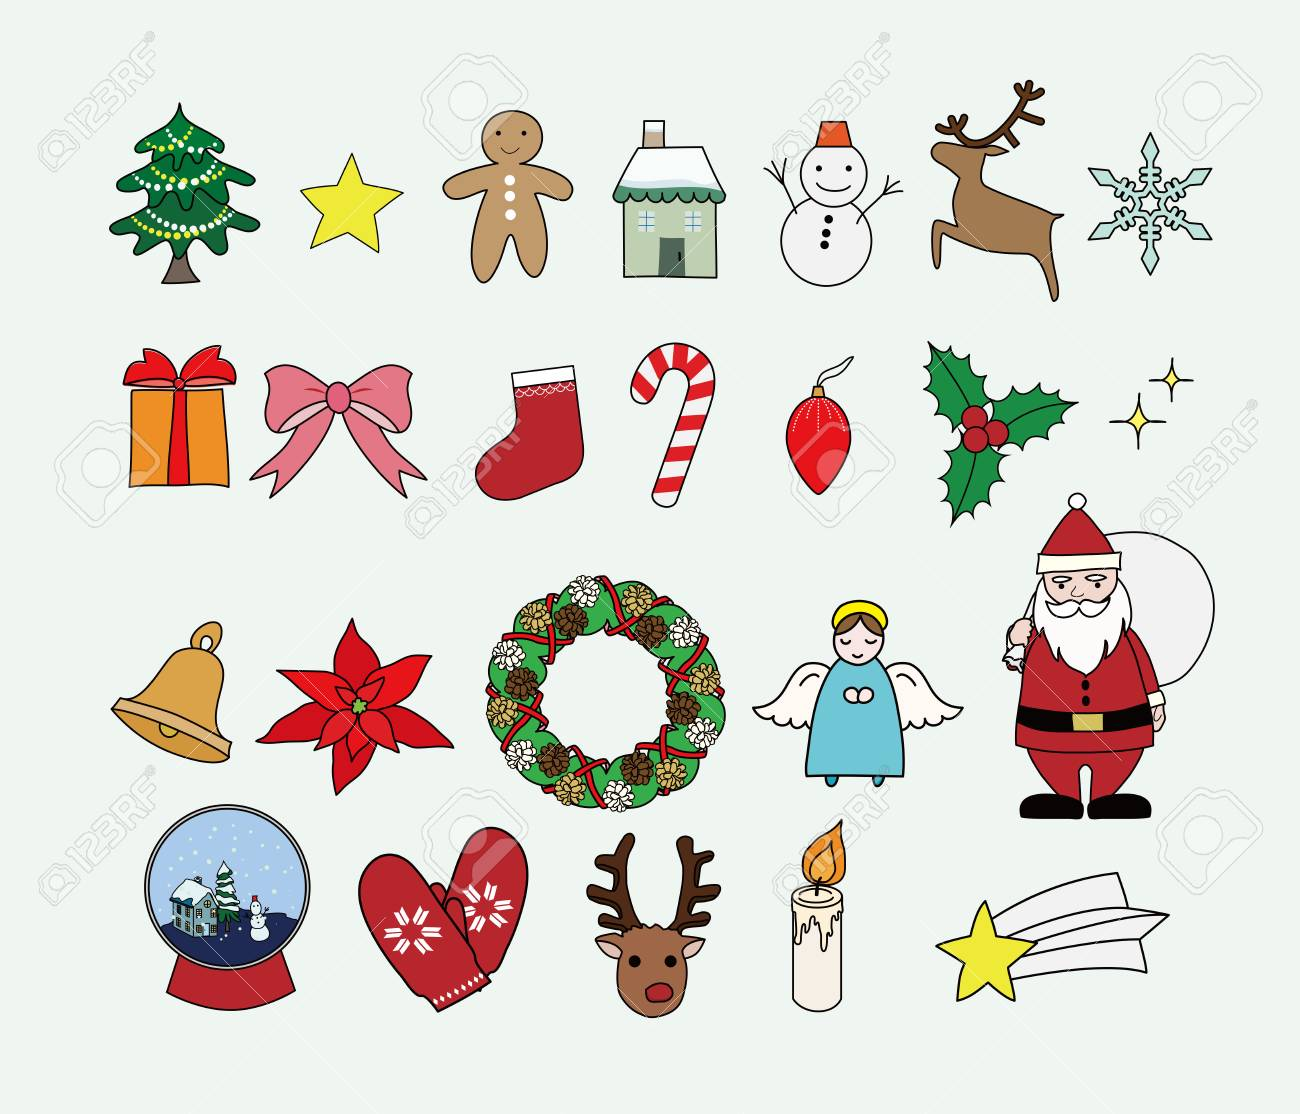 Christmas Illustration.Christmas Illustration Set Vector Illustration